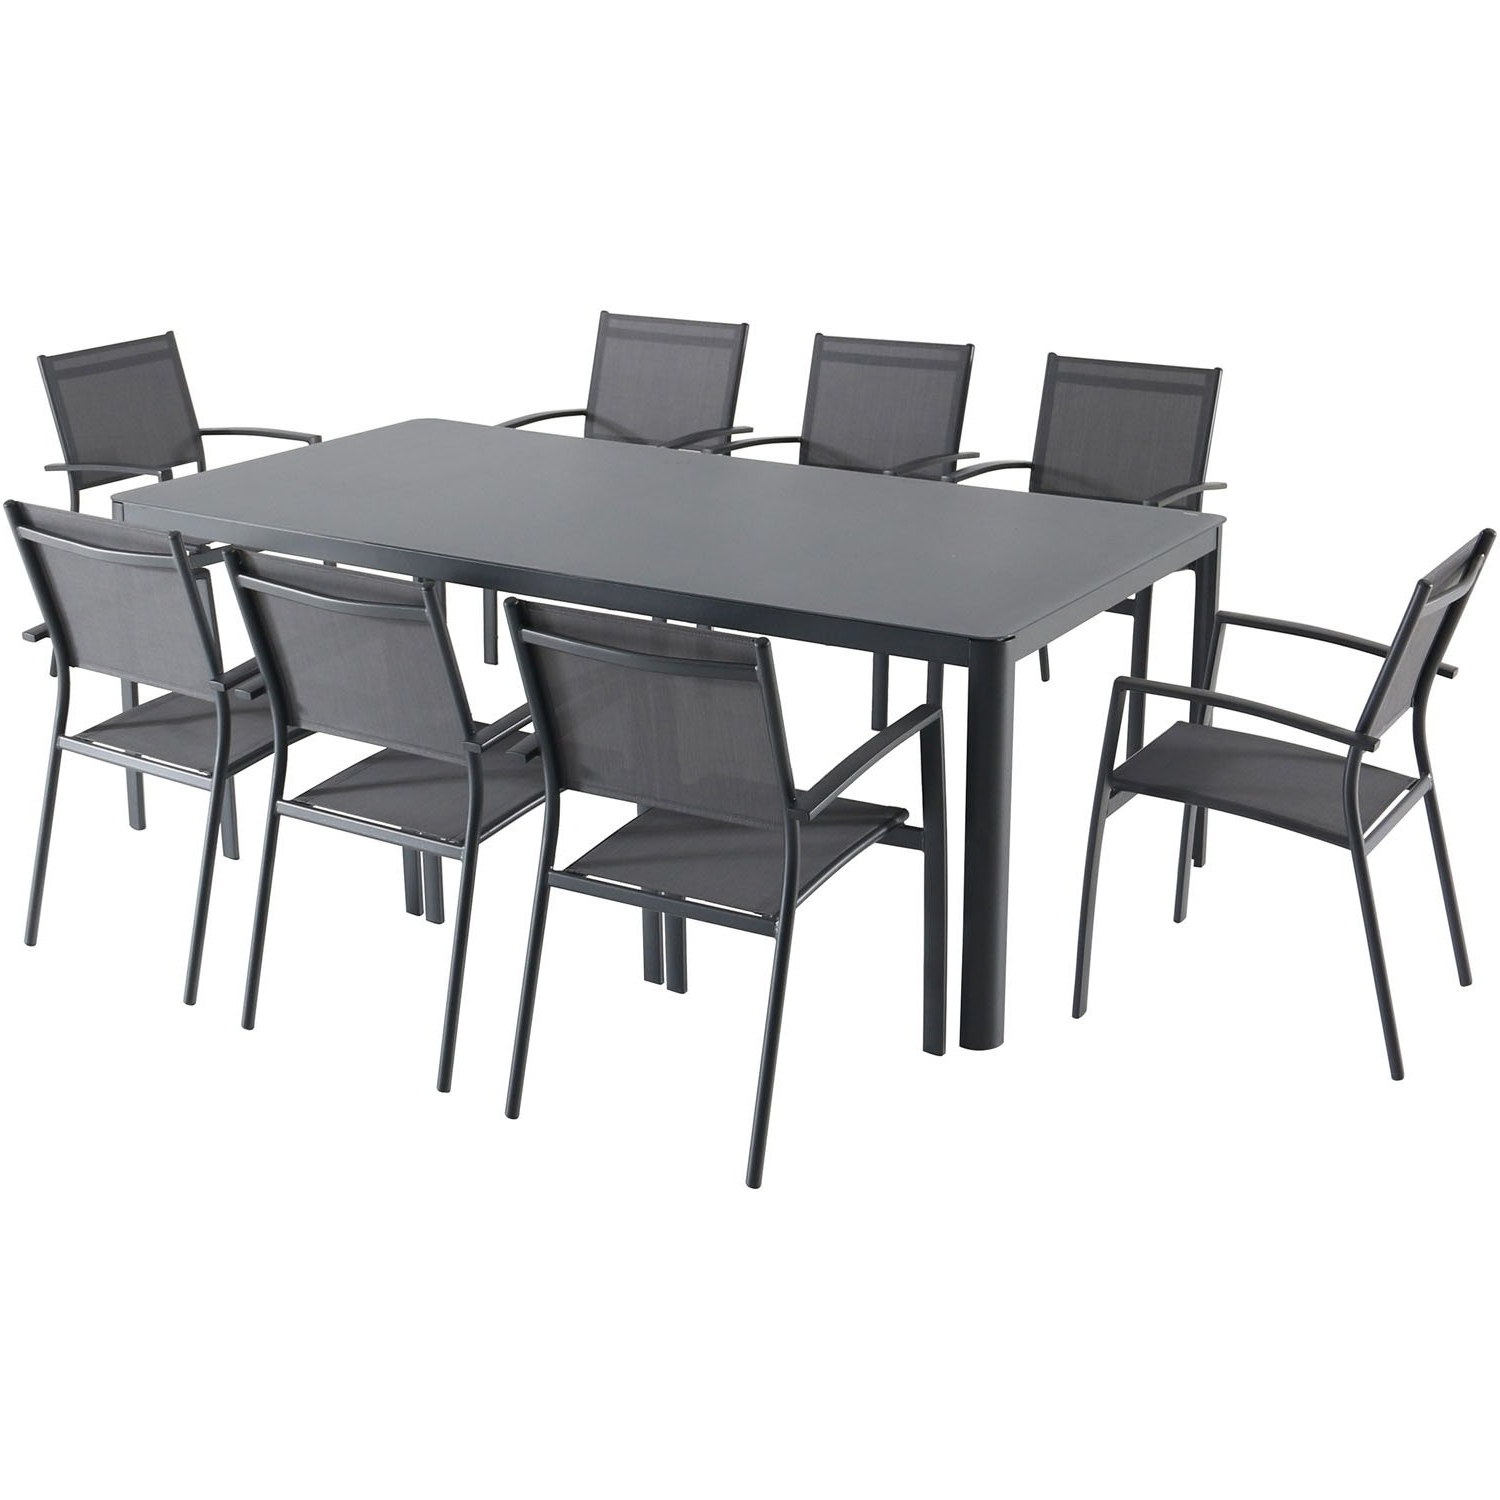 Shop Hanover Fresno 9 Piece Outdoor Dining Set With 8 Sling Arm Within Widely Used Grady 5 Piece Round Dining Sets (View 9 of 25)